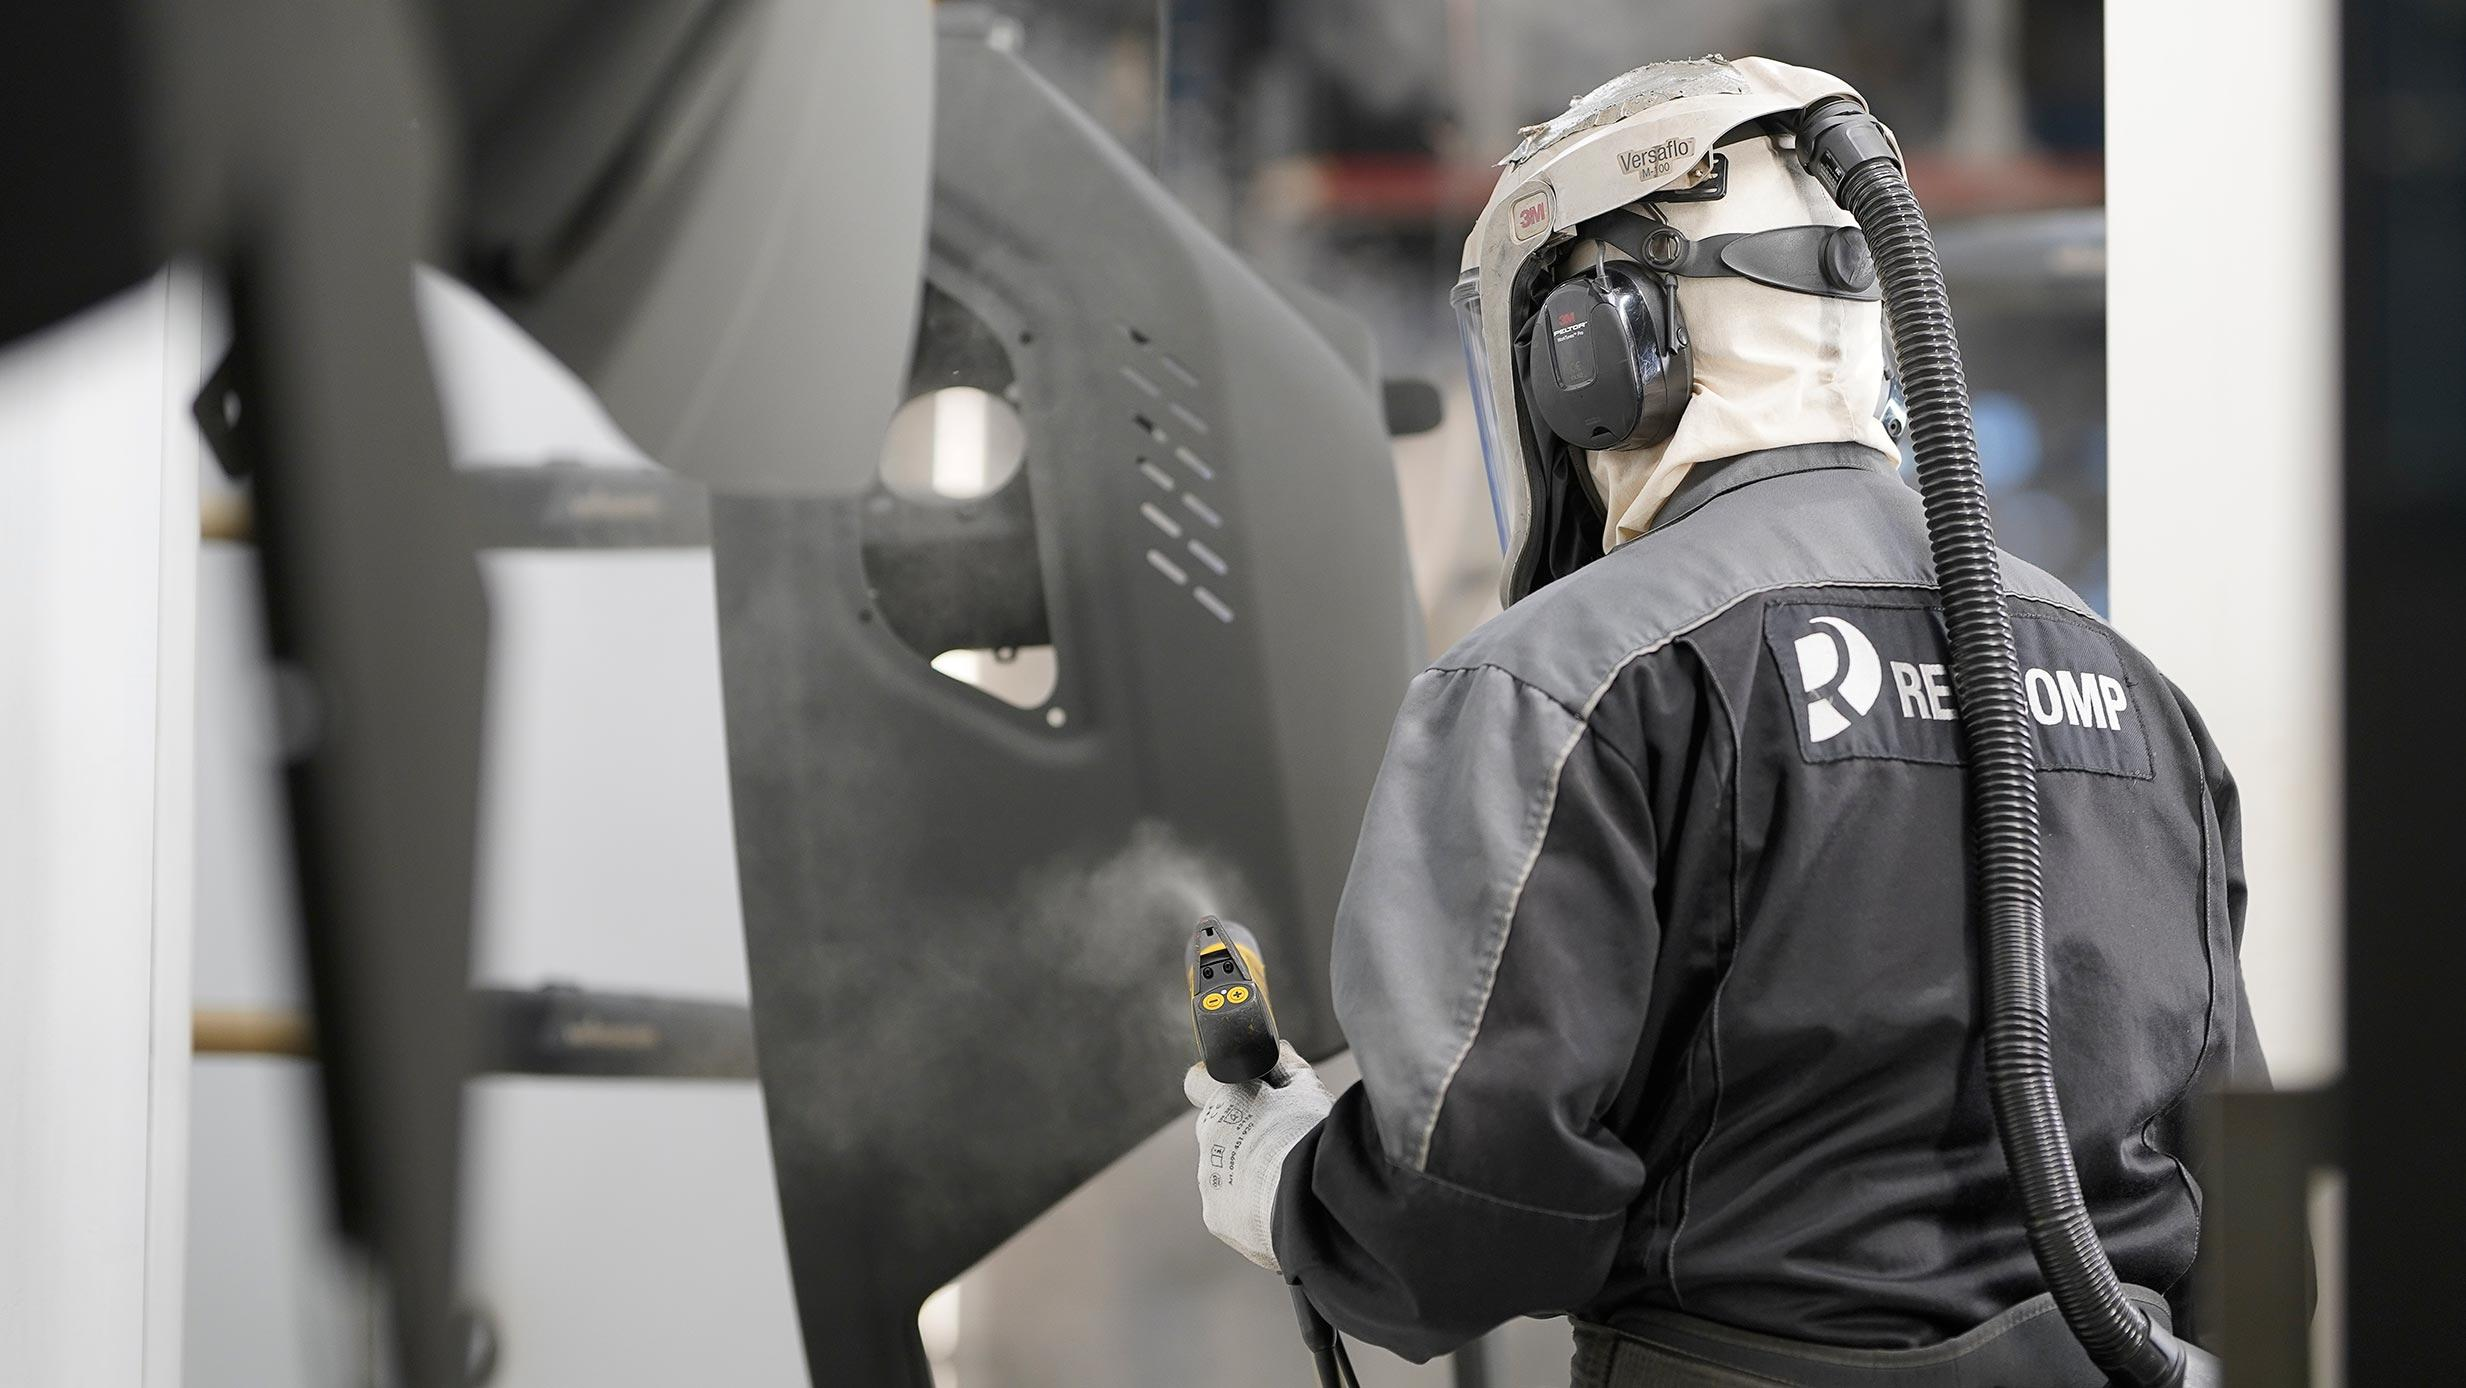 Come rain or shine, two-coat powder coating protects in challenging conditions